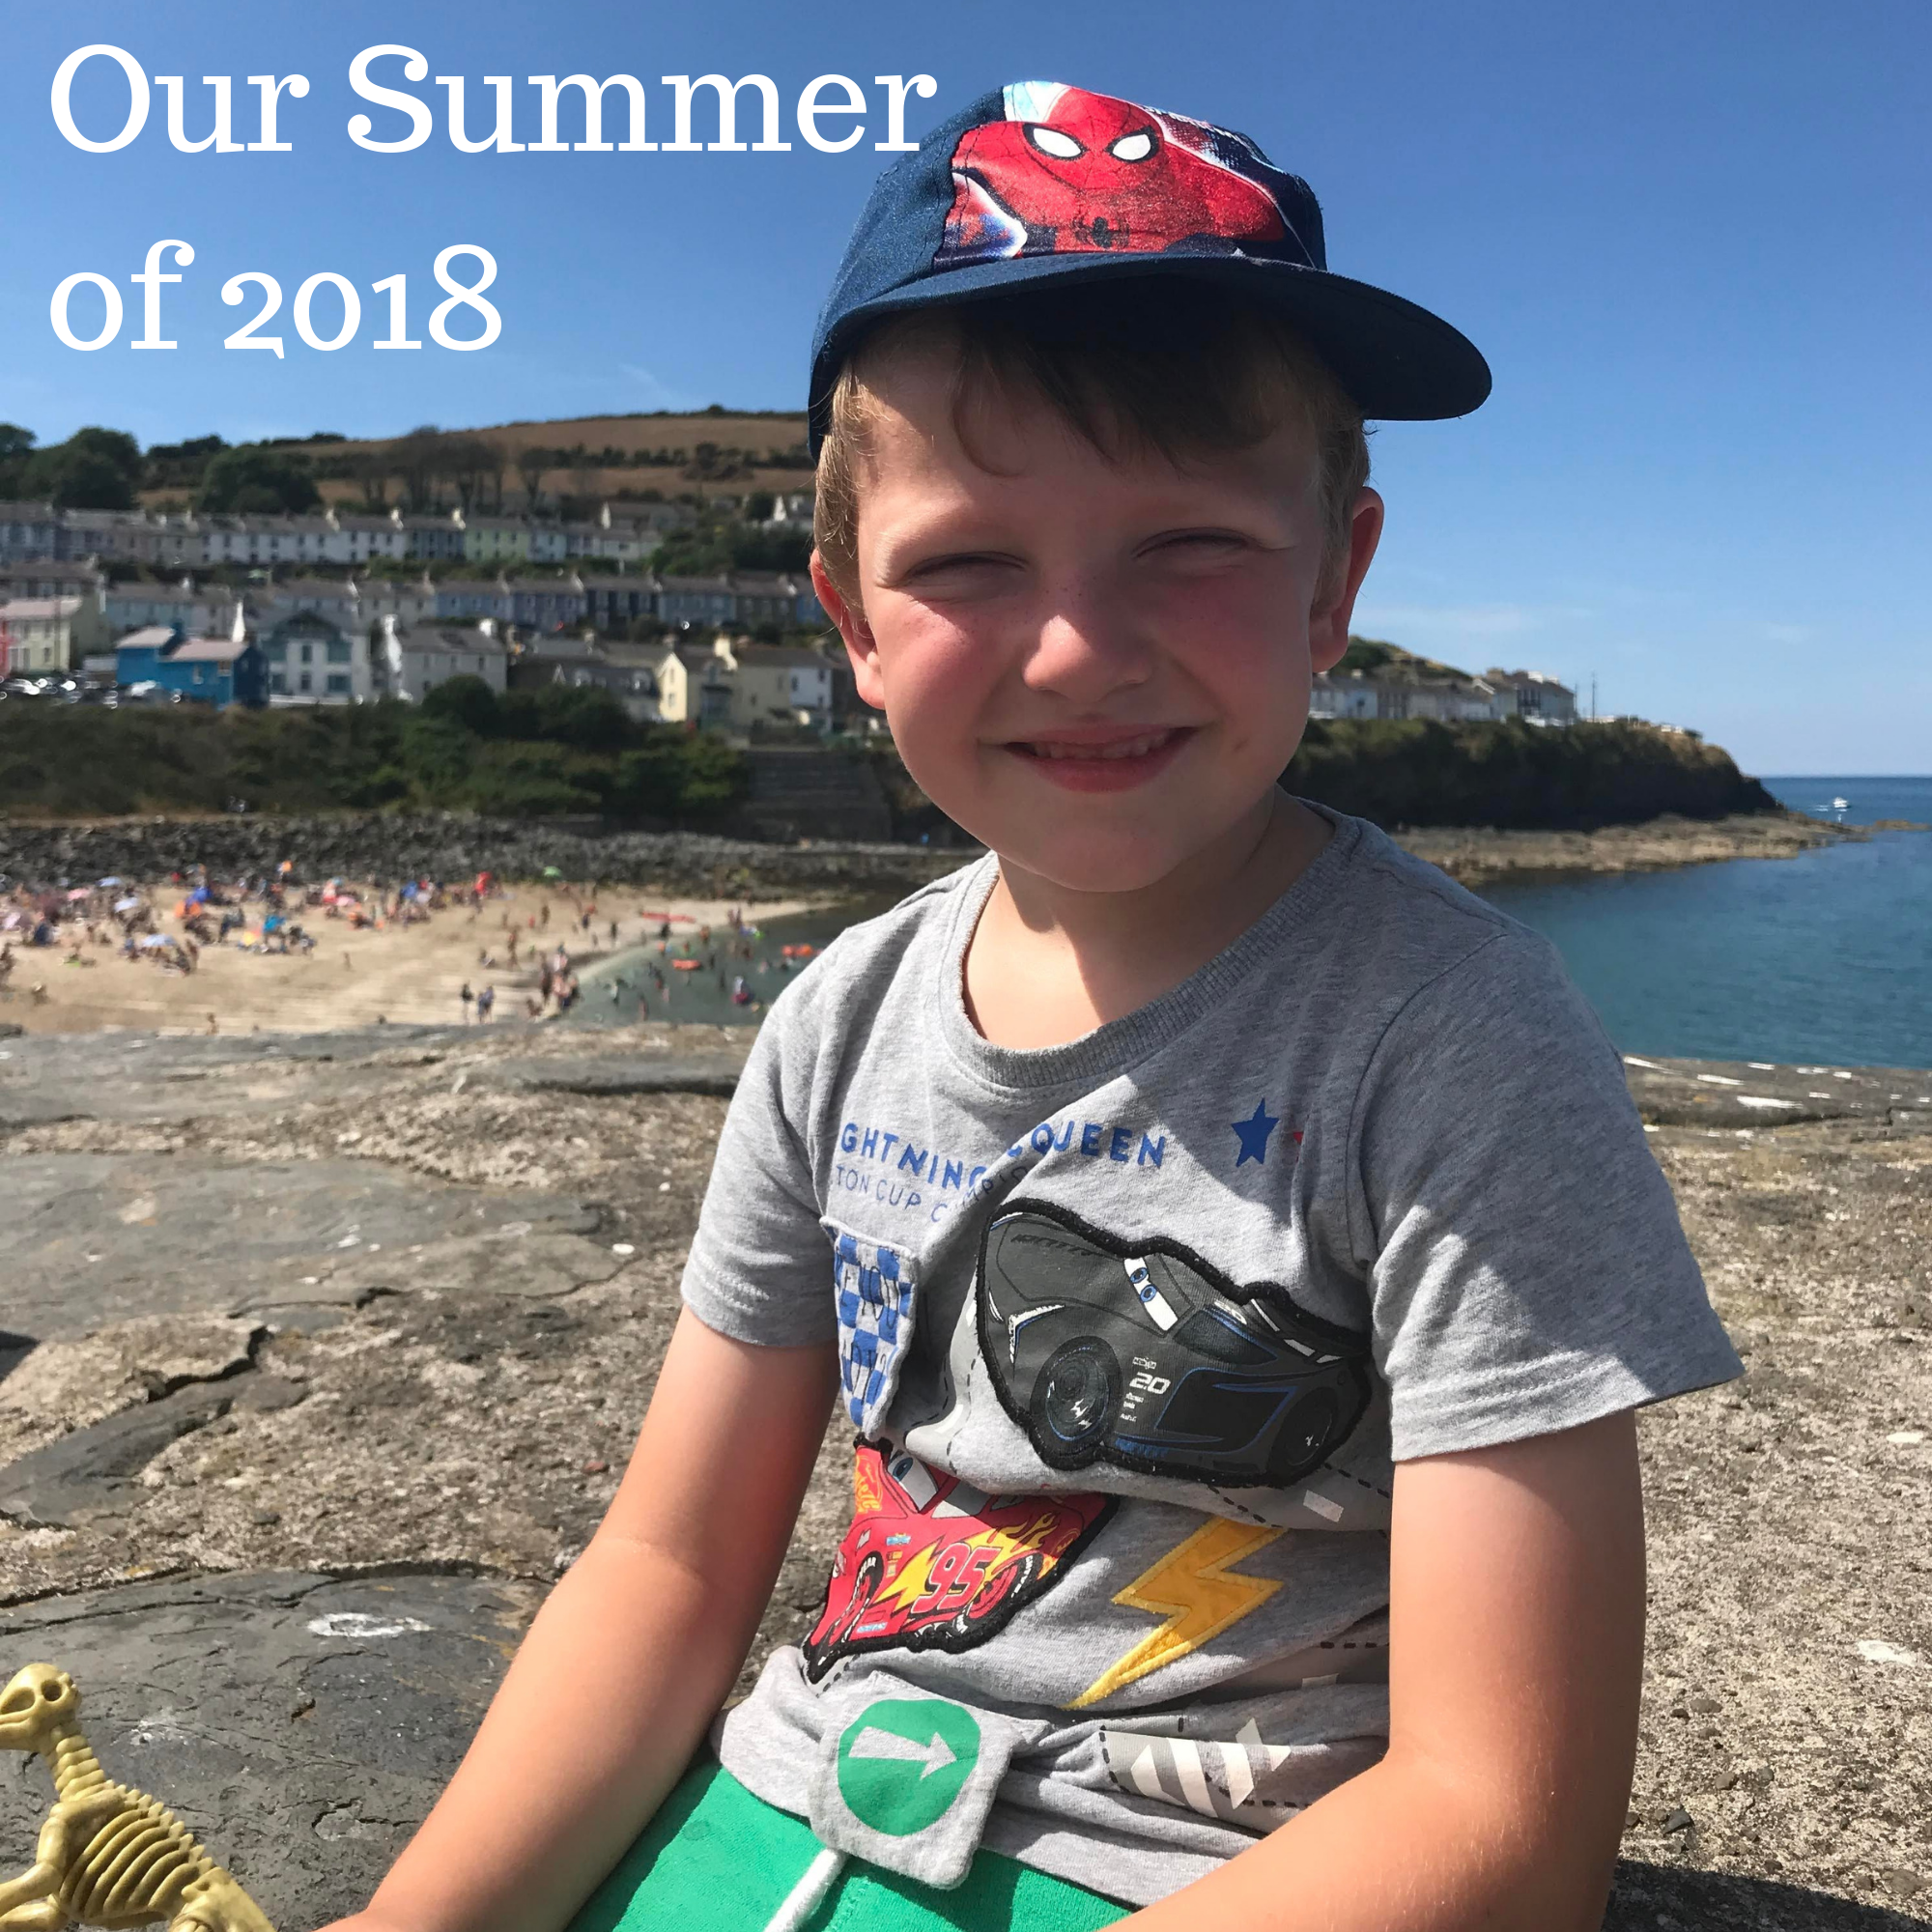 Our Summer of 2018